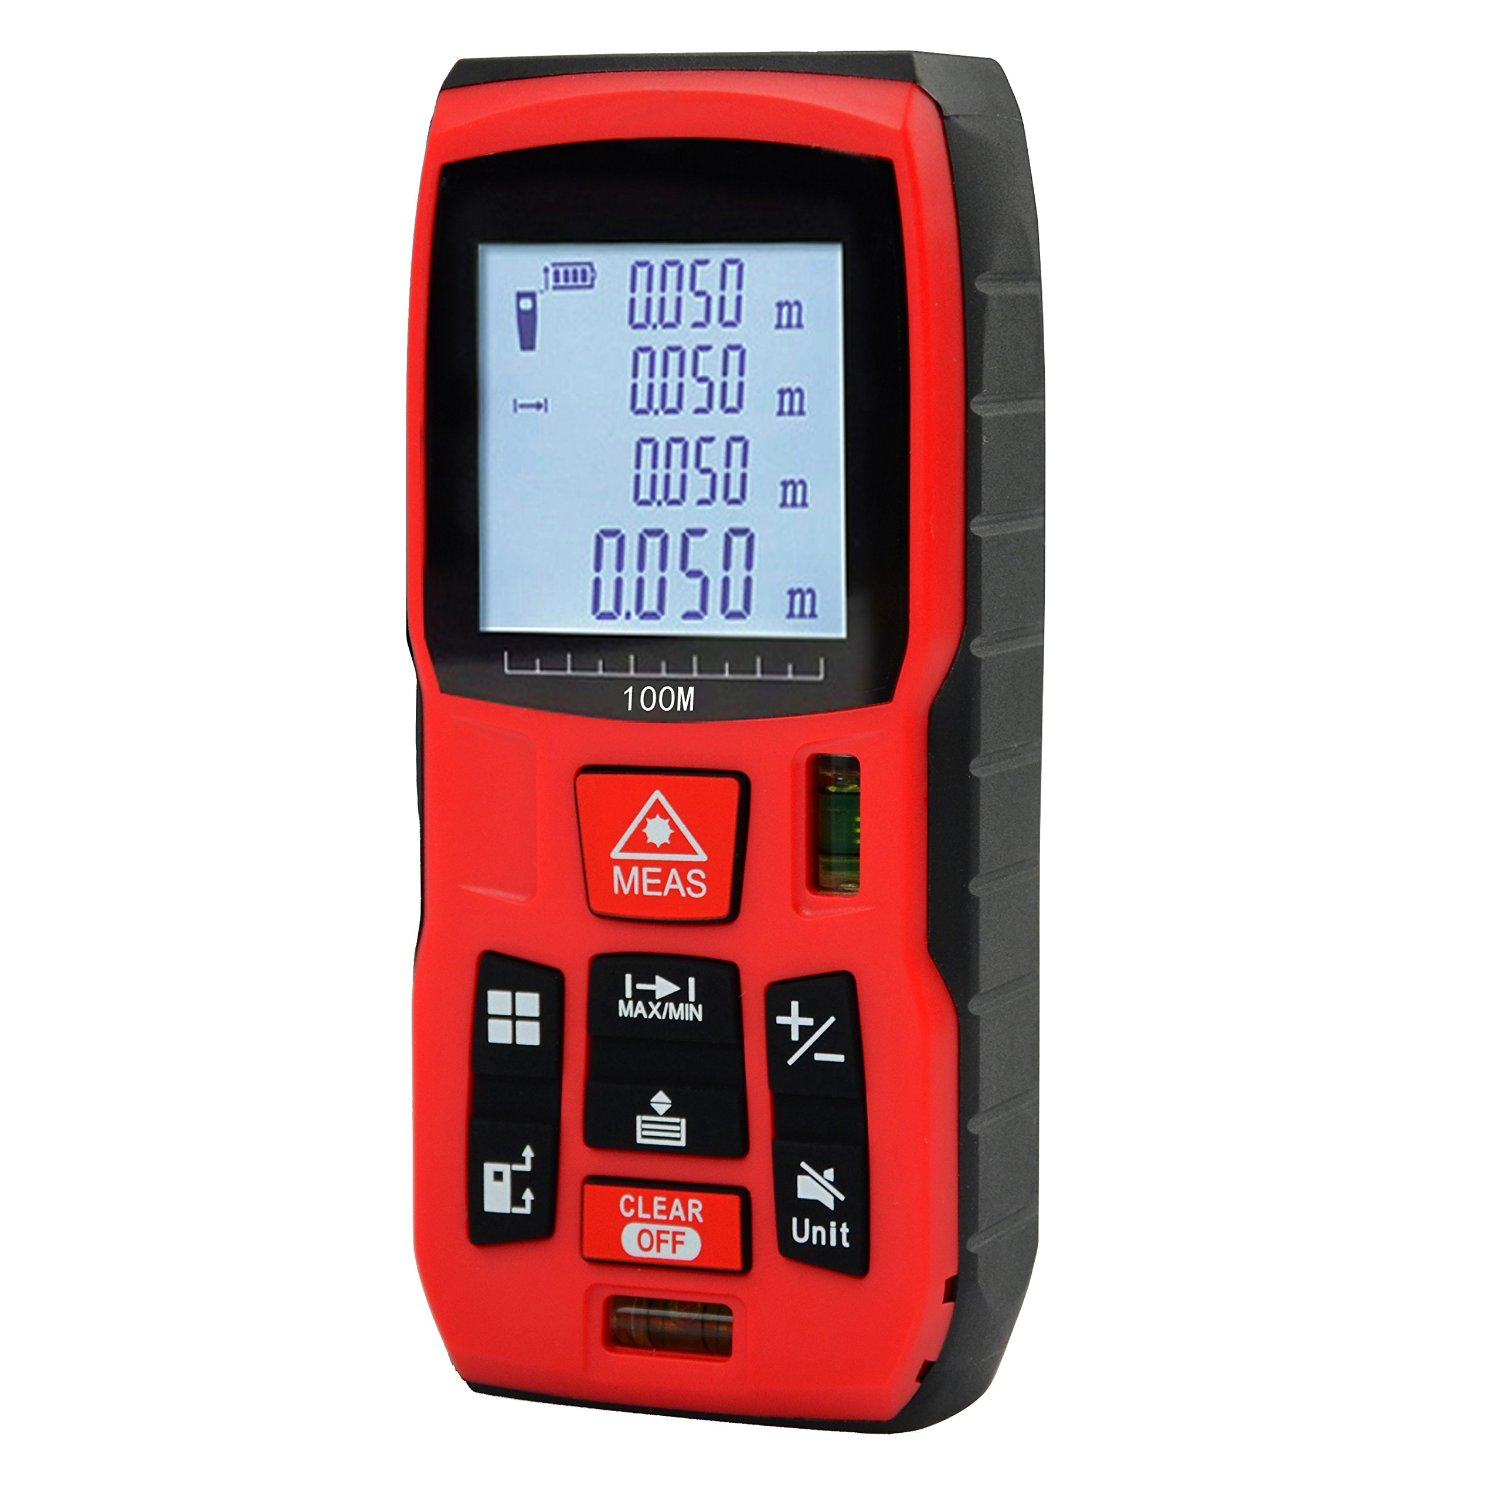 Qyuhe Laser Distance Meter 100M Measure Measuring Tool Measurement Device handheld with Mute Function and Backlit Display (328ft)